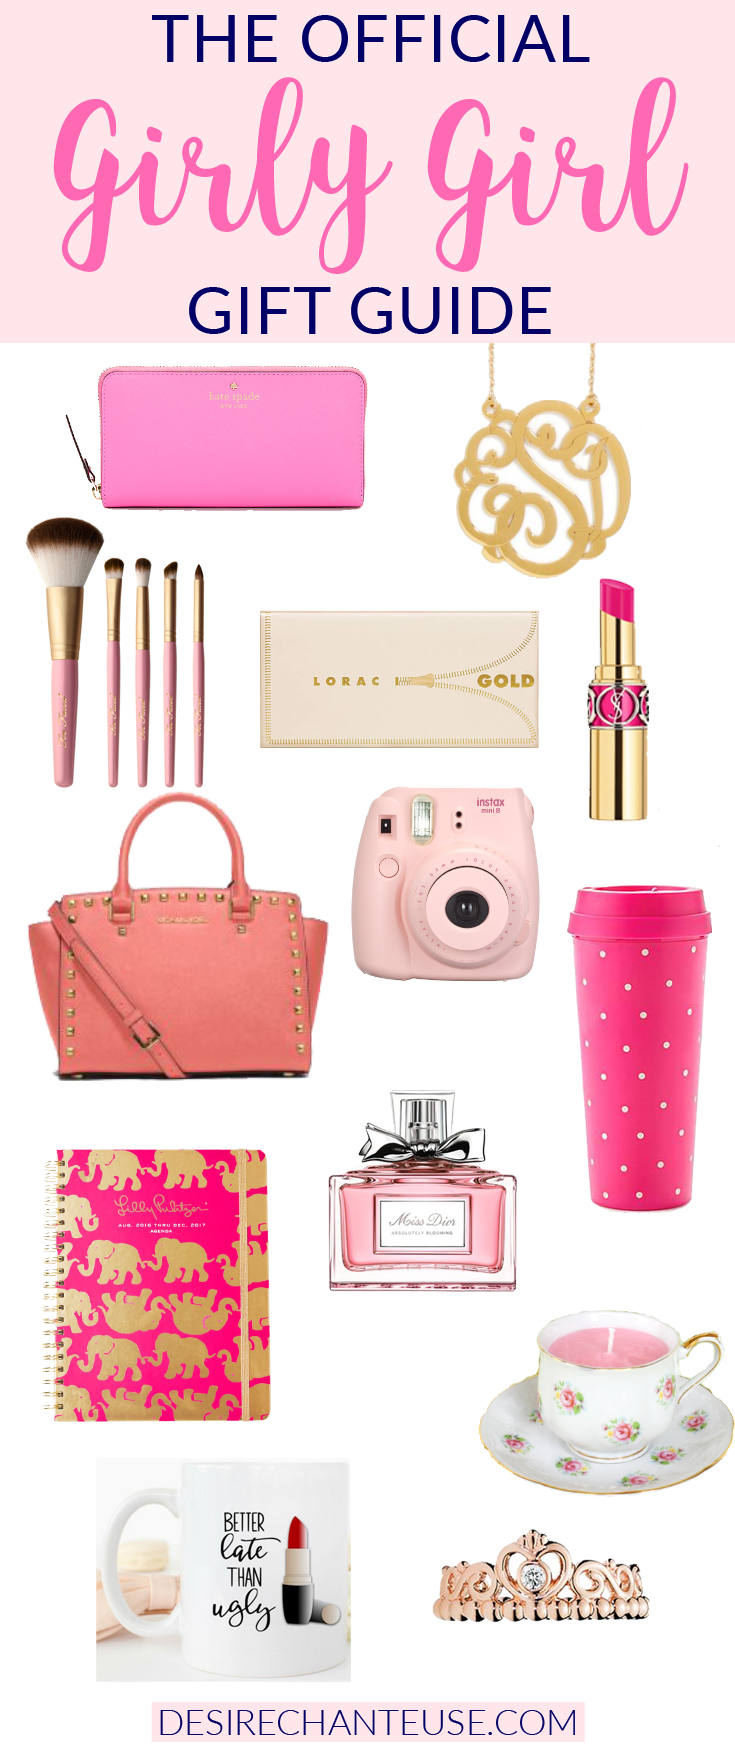 """Need gift ideas for a women/teen/child that's a girly-girl? Check out """"The Official Girly-Girl Gift Guide"""" for suggestions! 